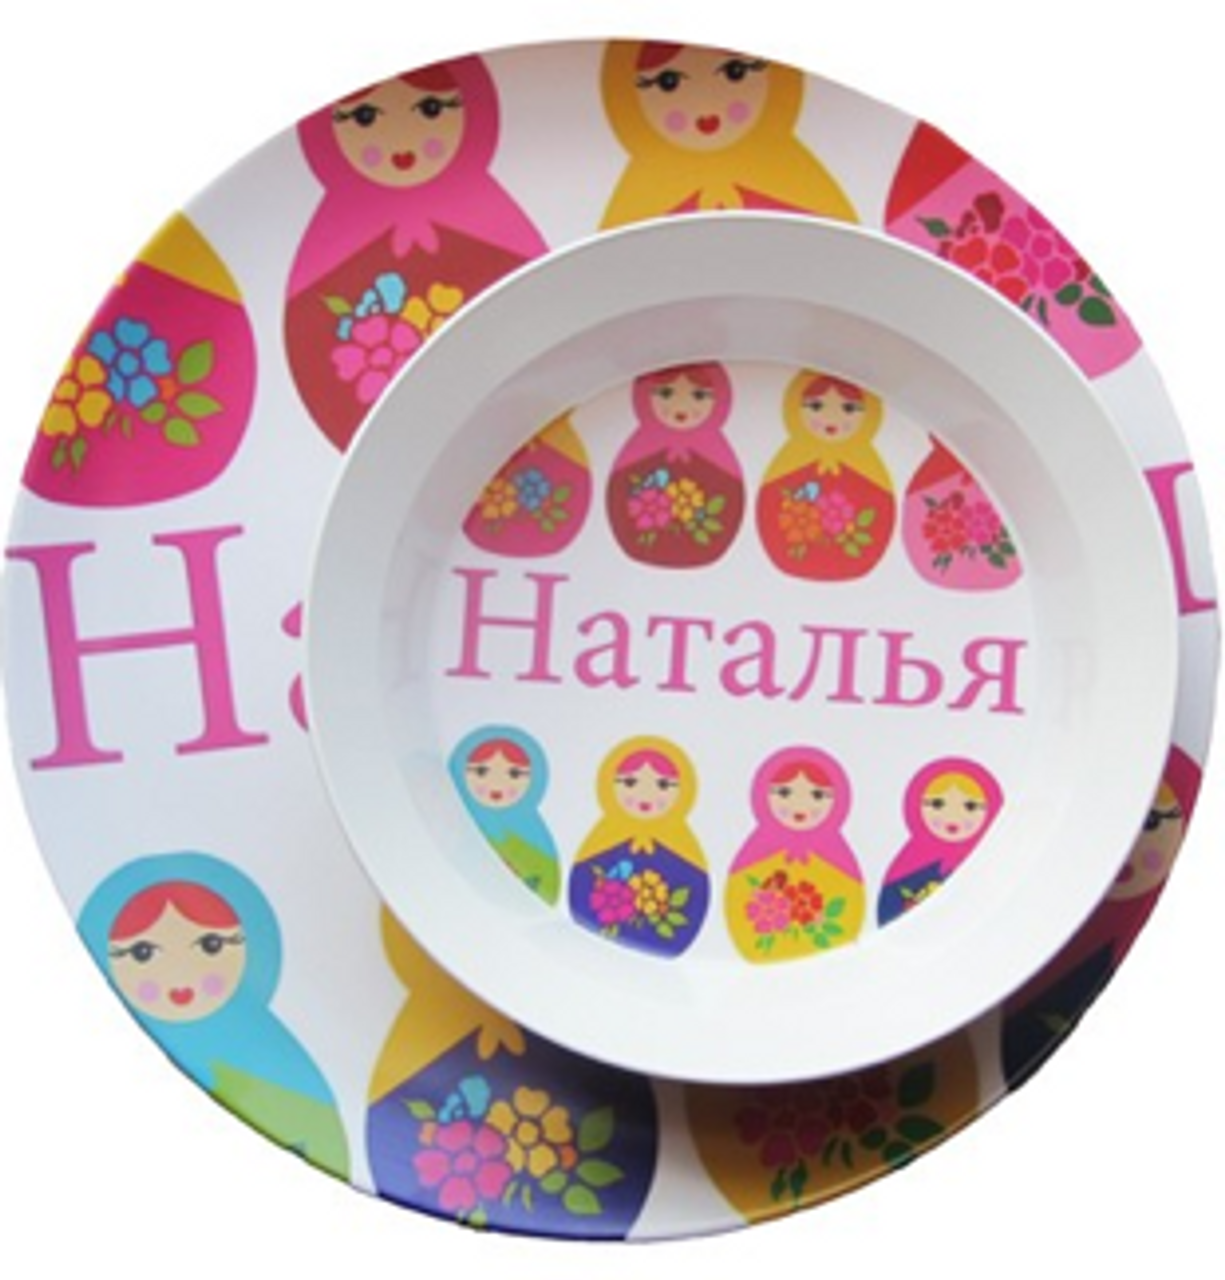 Russian Girl Products